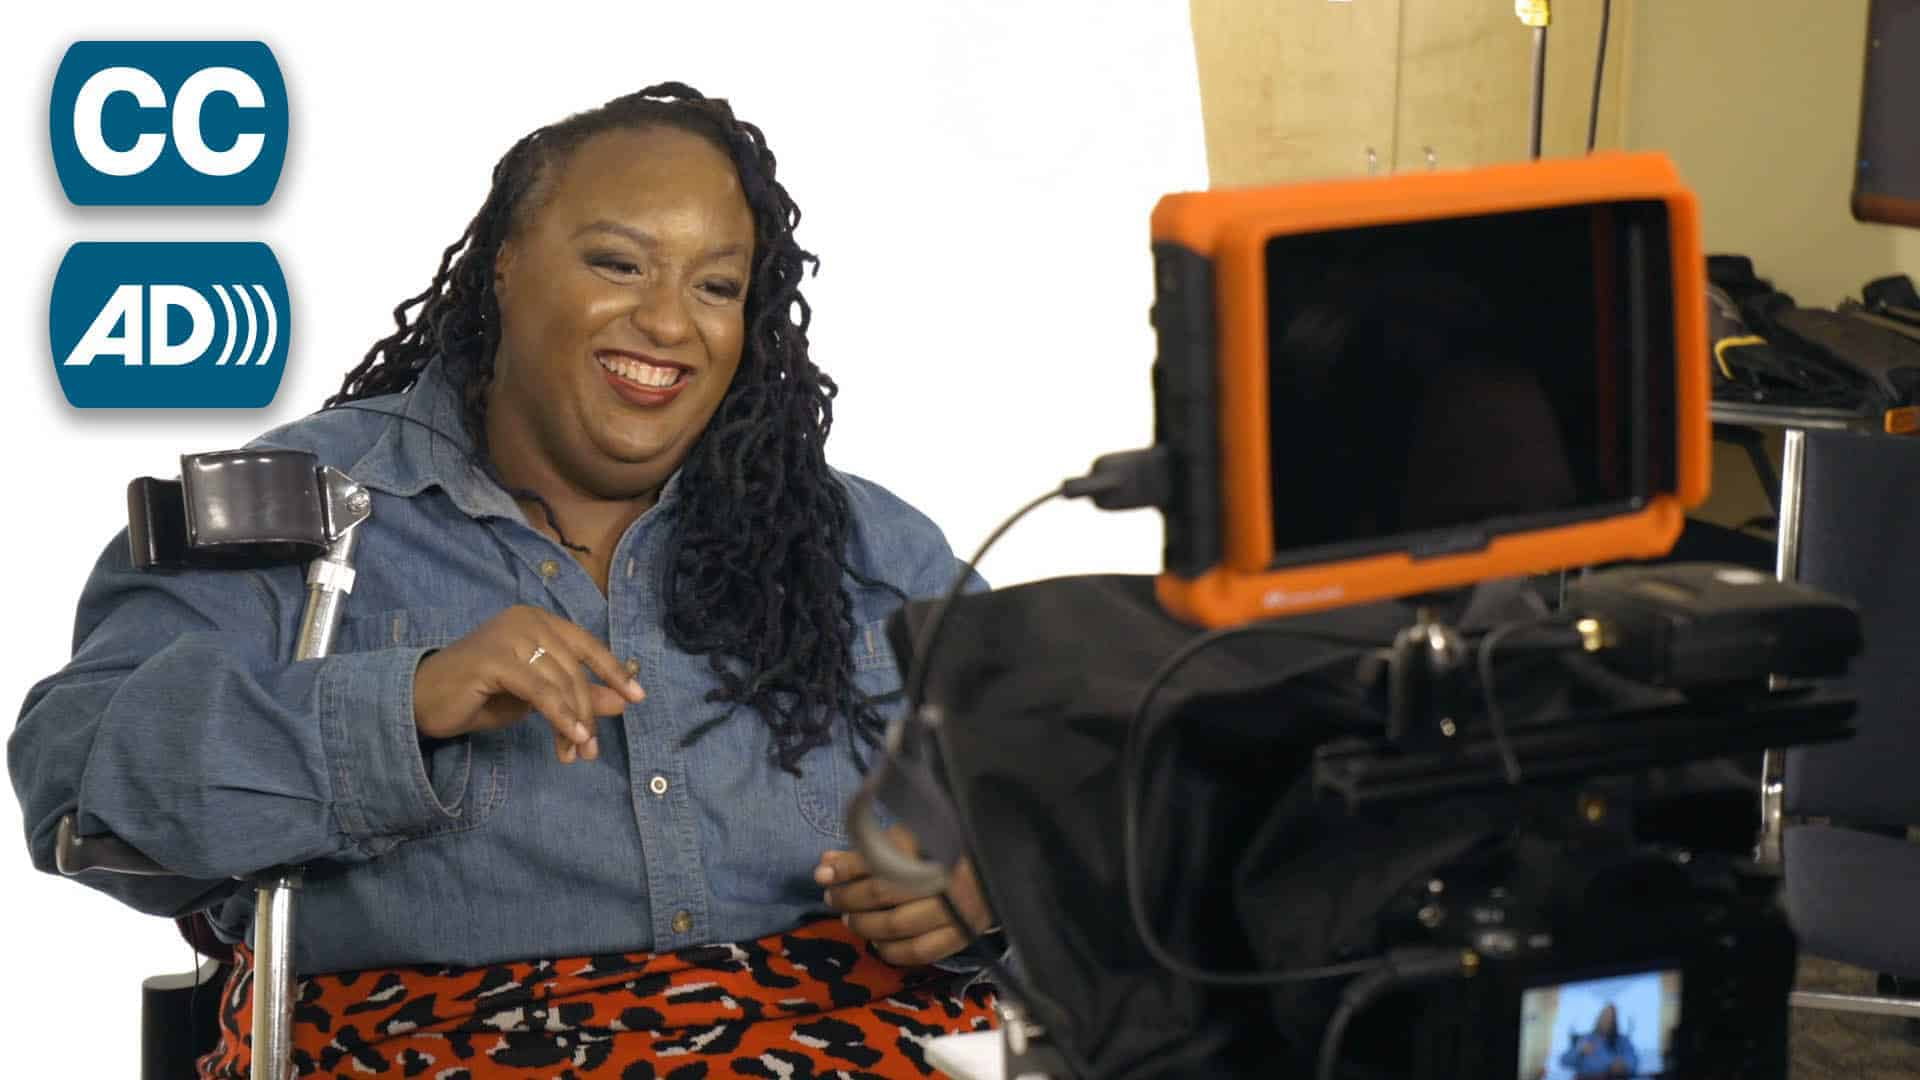 A Black woman with forearm crutches smiles widely on a film set.